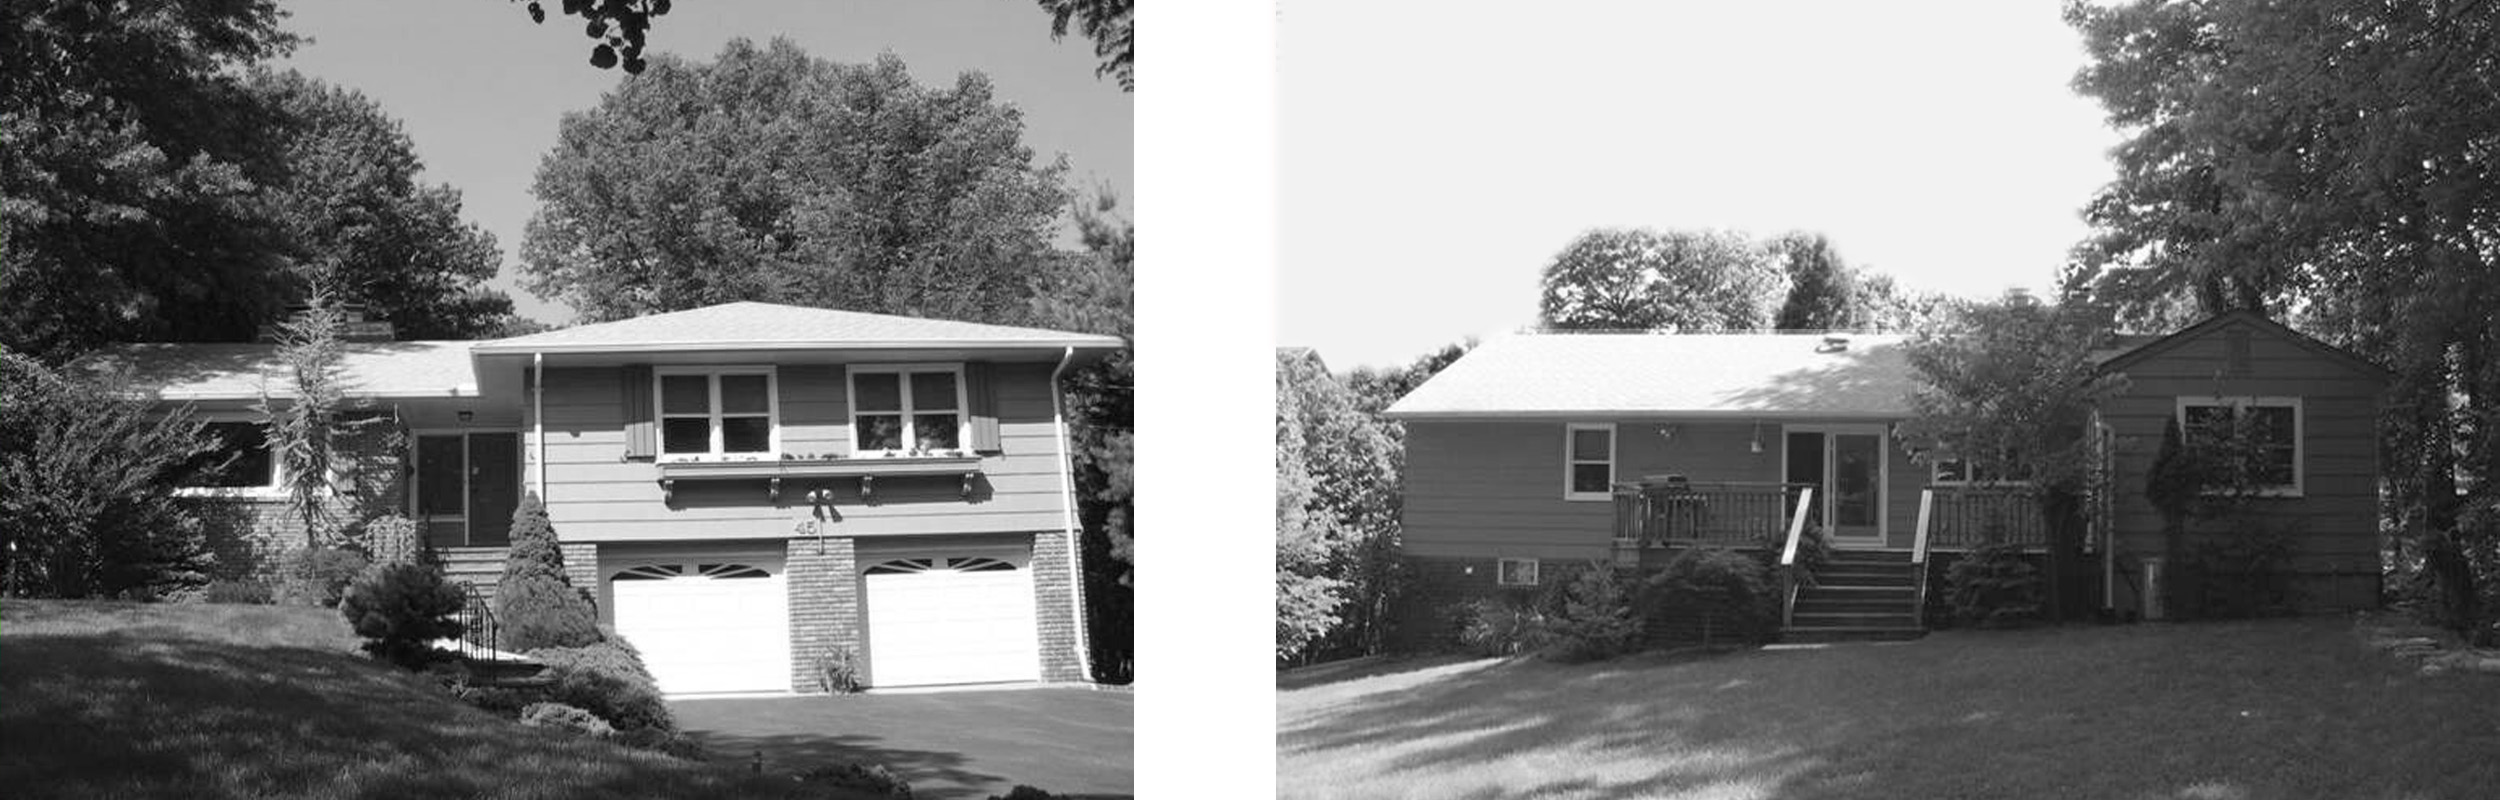 The original Ranch, shown front and back